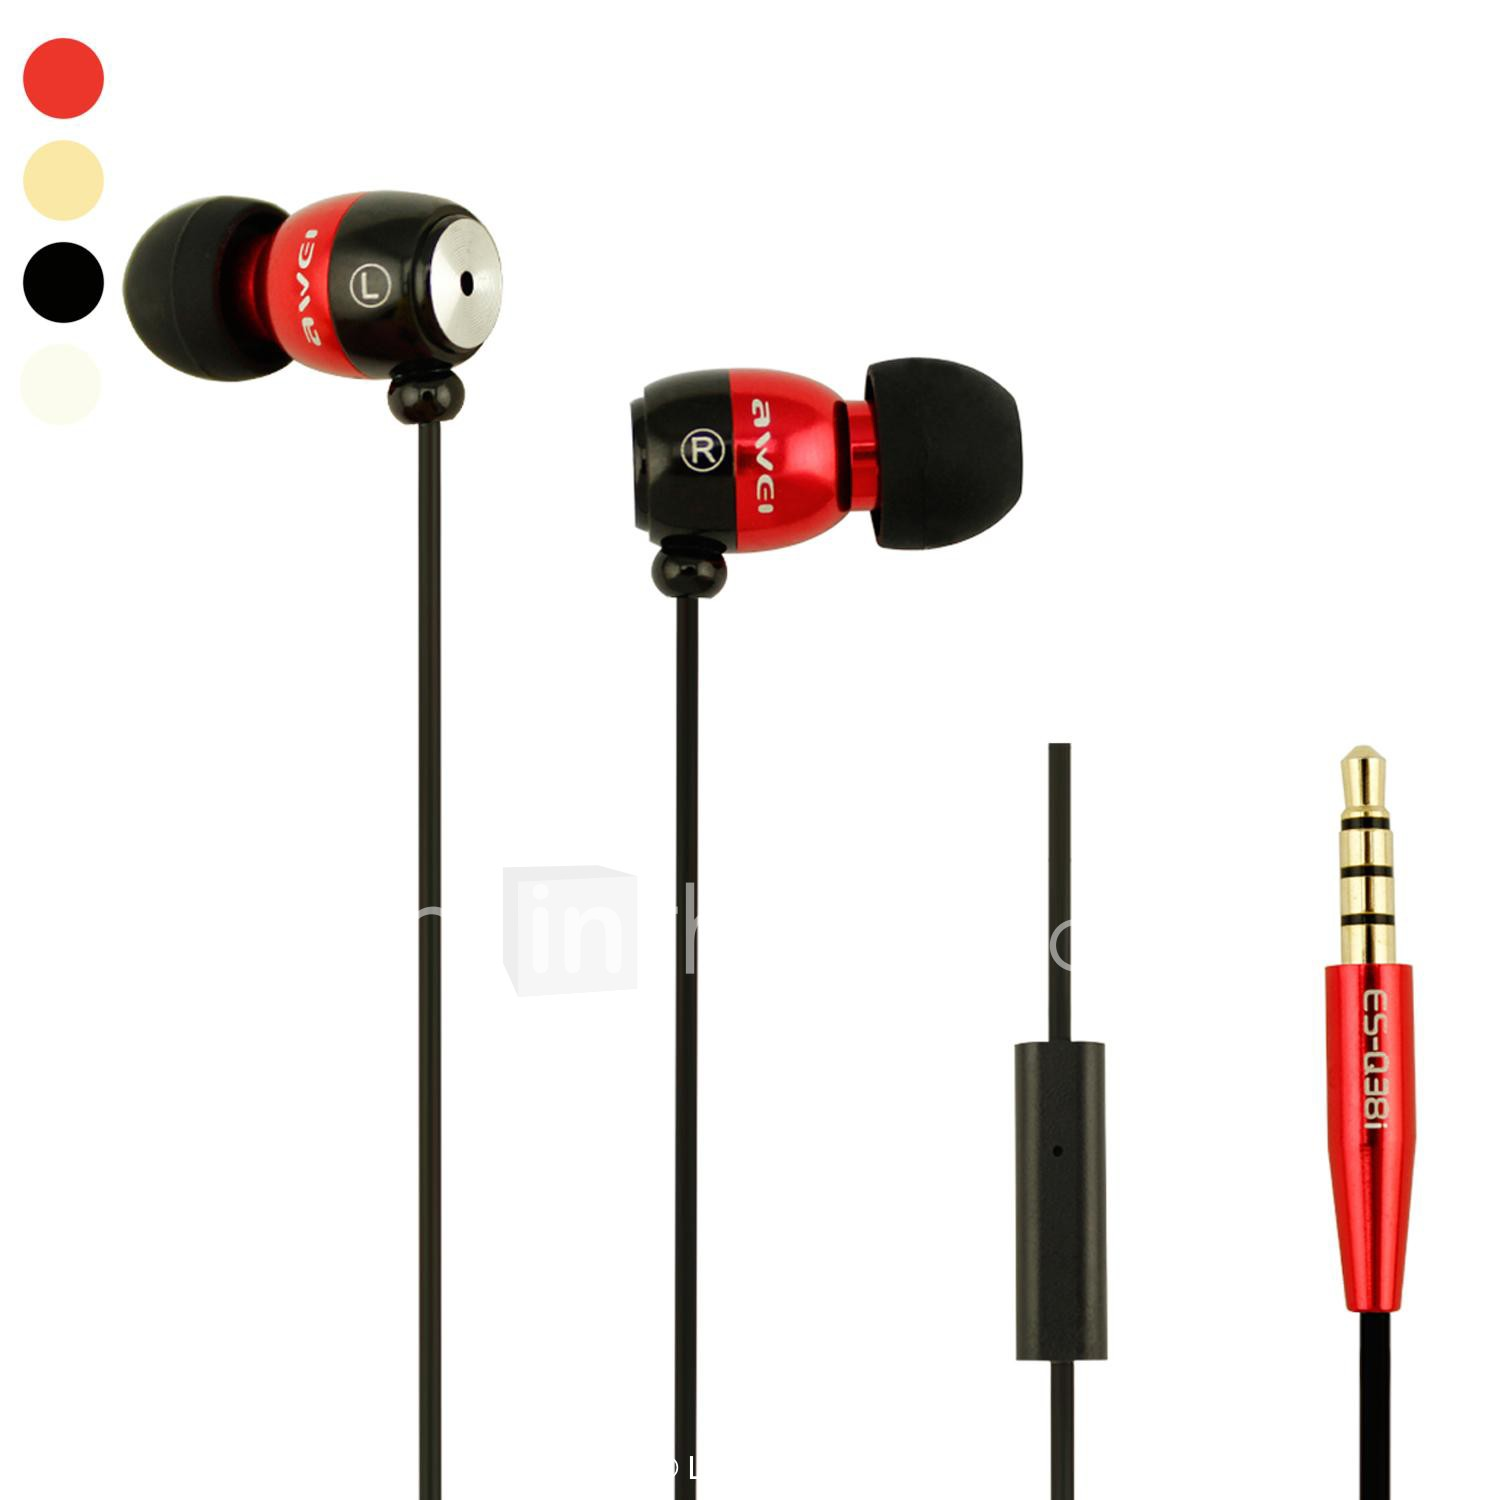 hight resolution of awei awei q8i in ear wired headphones aluminum alloy mobile phone earphone noise isolating with microphone headset 01395051